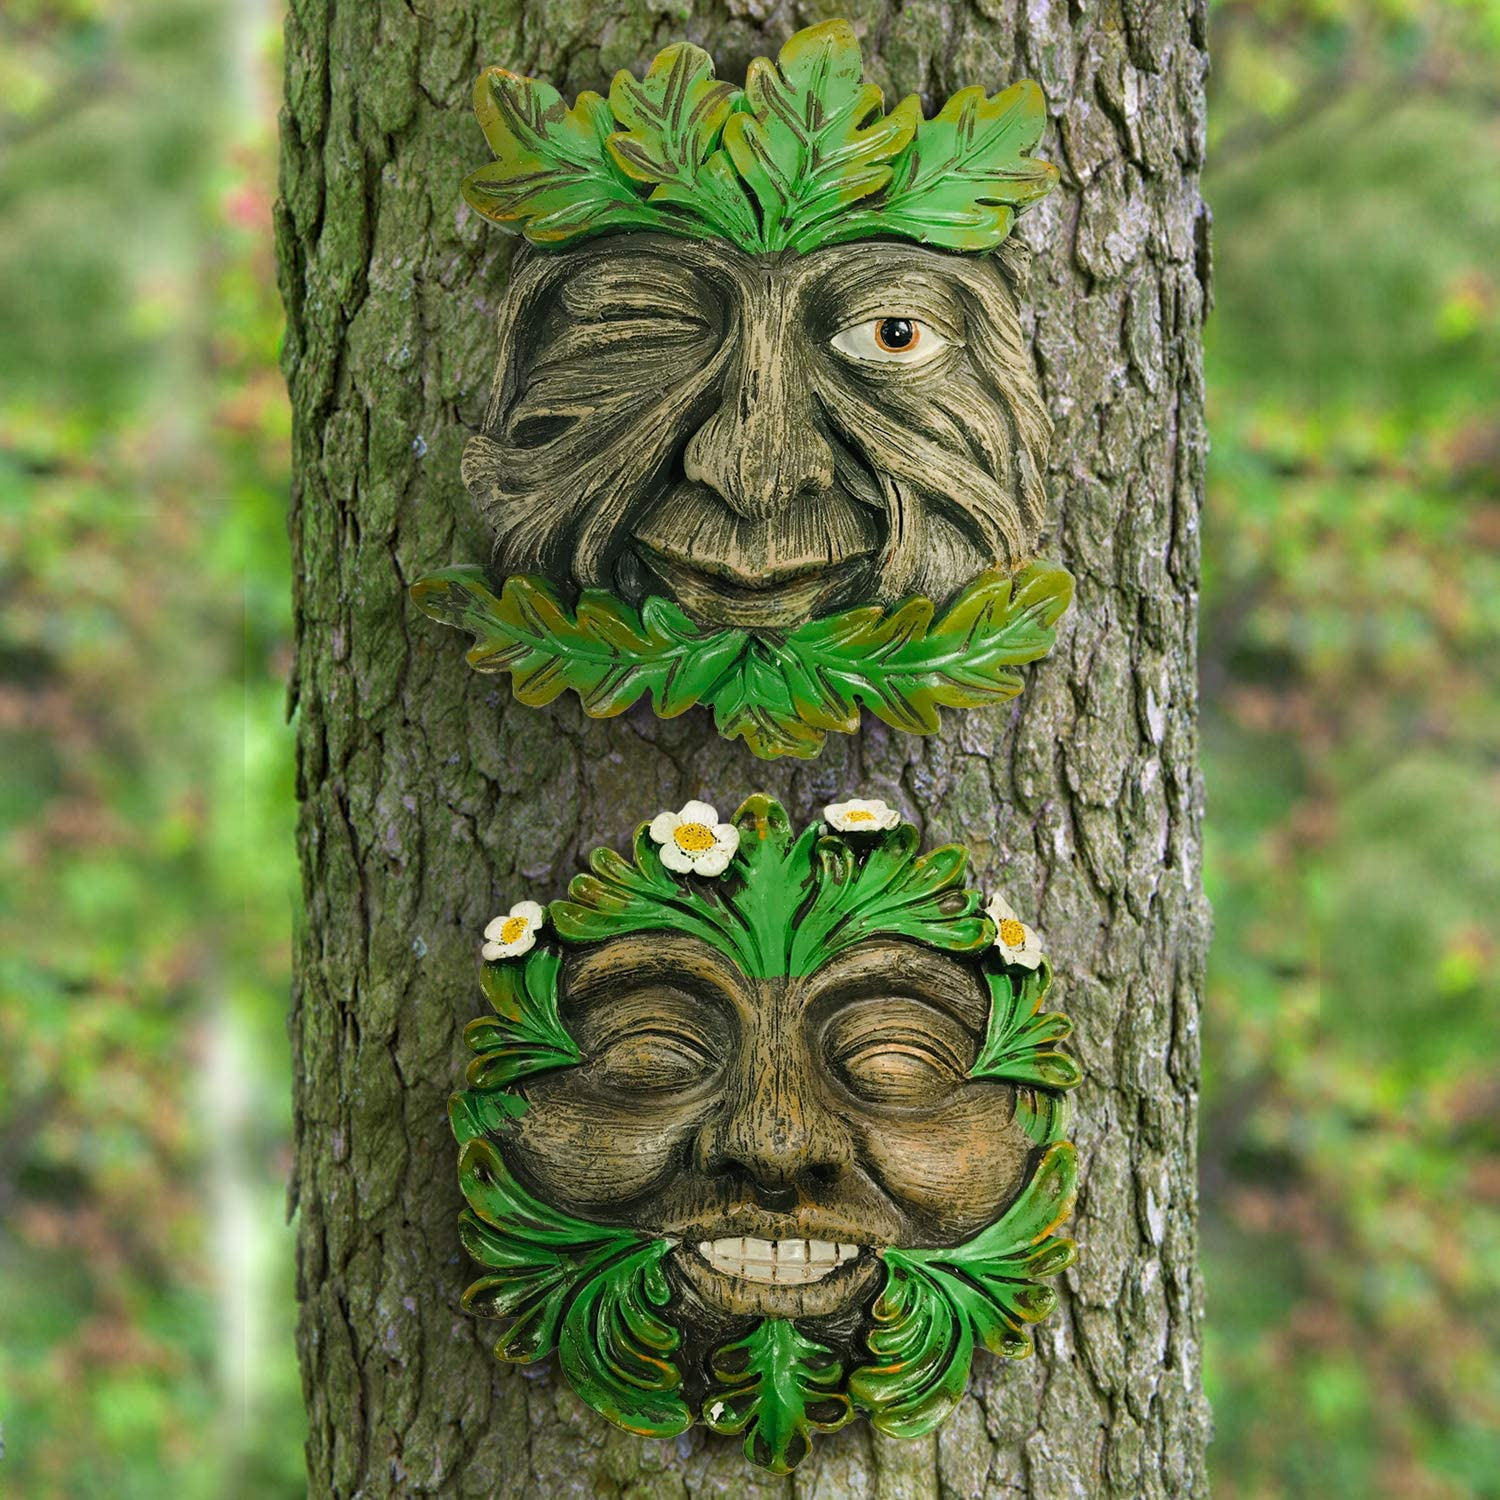 A Fun Happy Couples Tree Face, and Realistic Bark Design Add A Touch of Whimsy and Personality to Your Garden Tree Faces,Scuplture Garden Ar